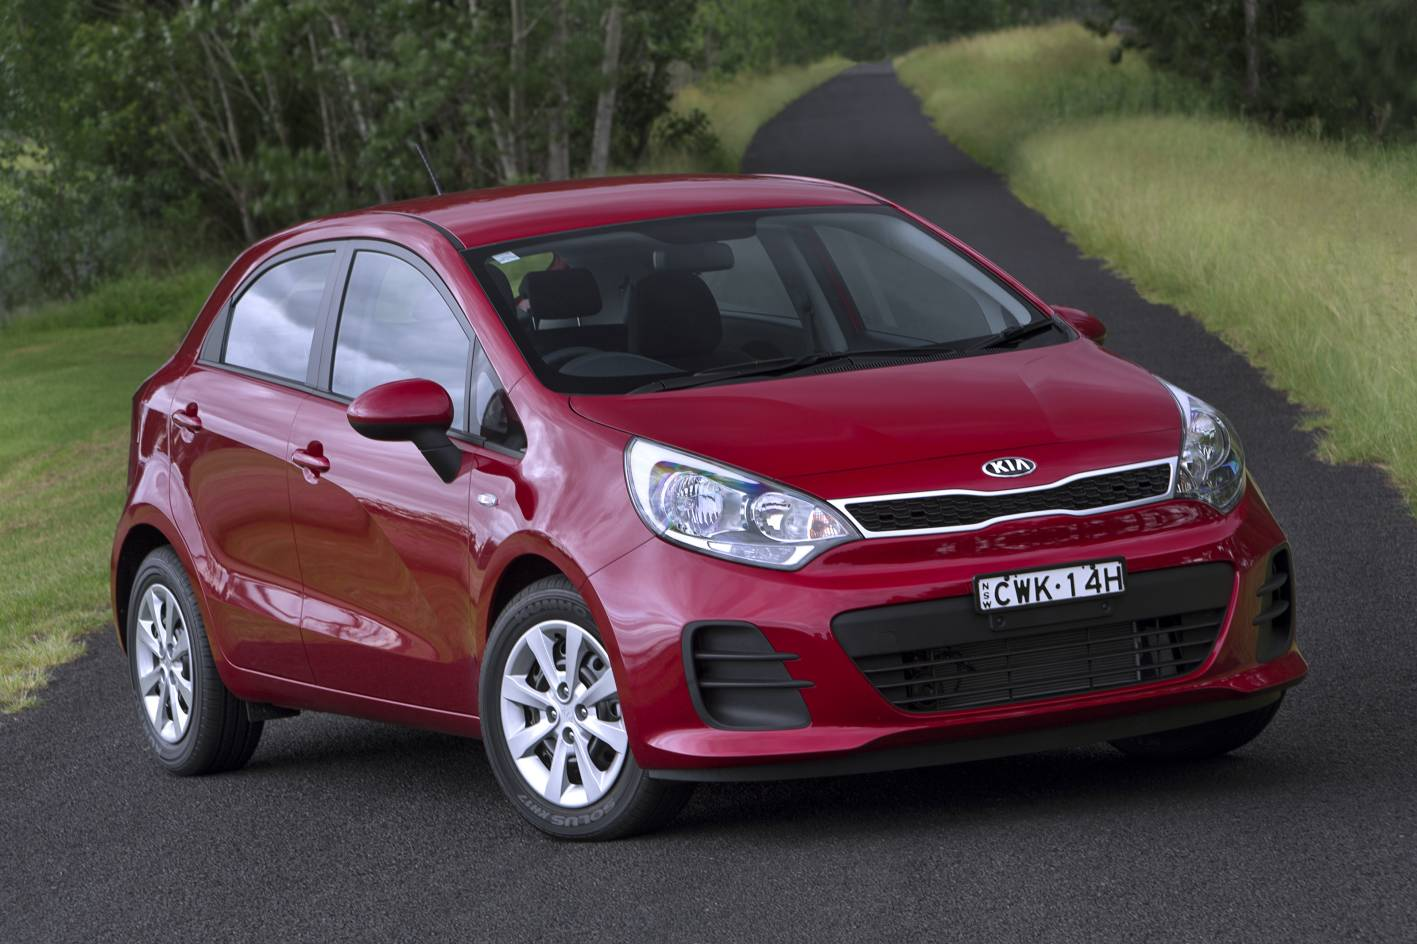 2015 kia rio s review practical motoring. Black Bedroom Furniture Sets. Home Design Ideas